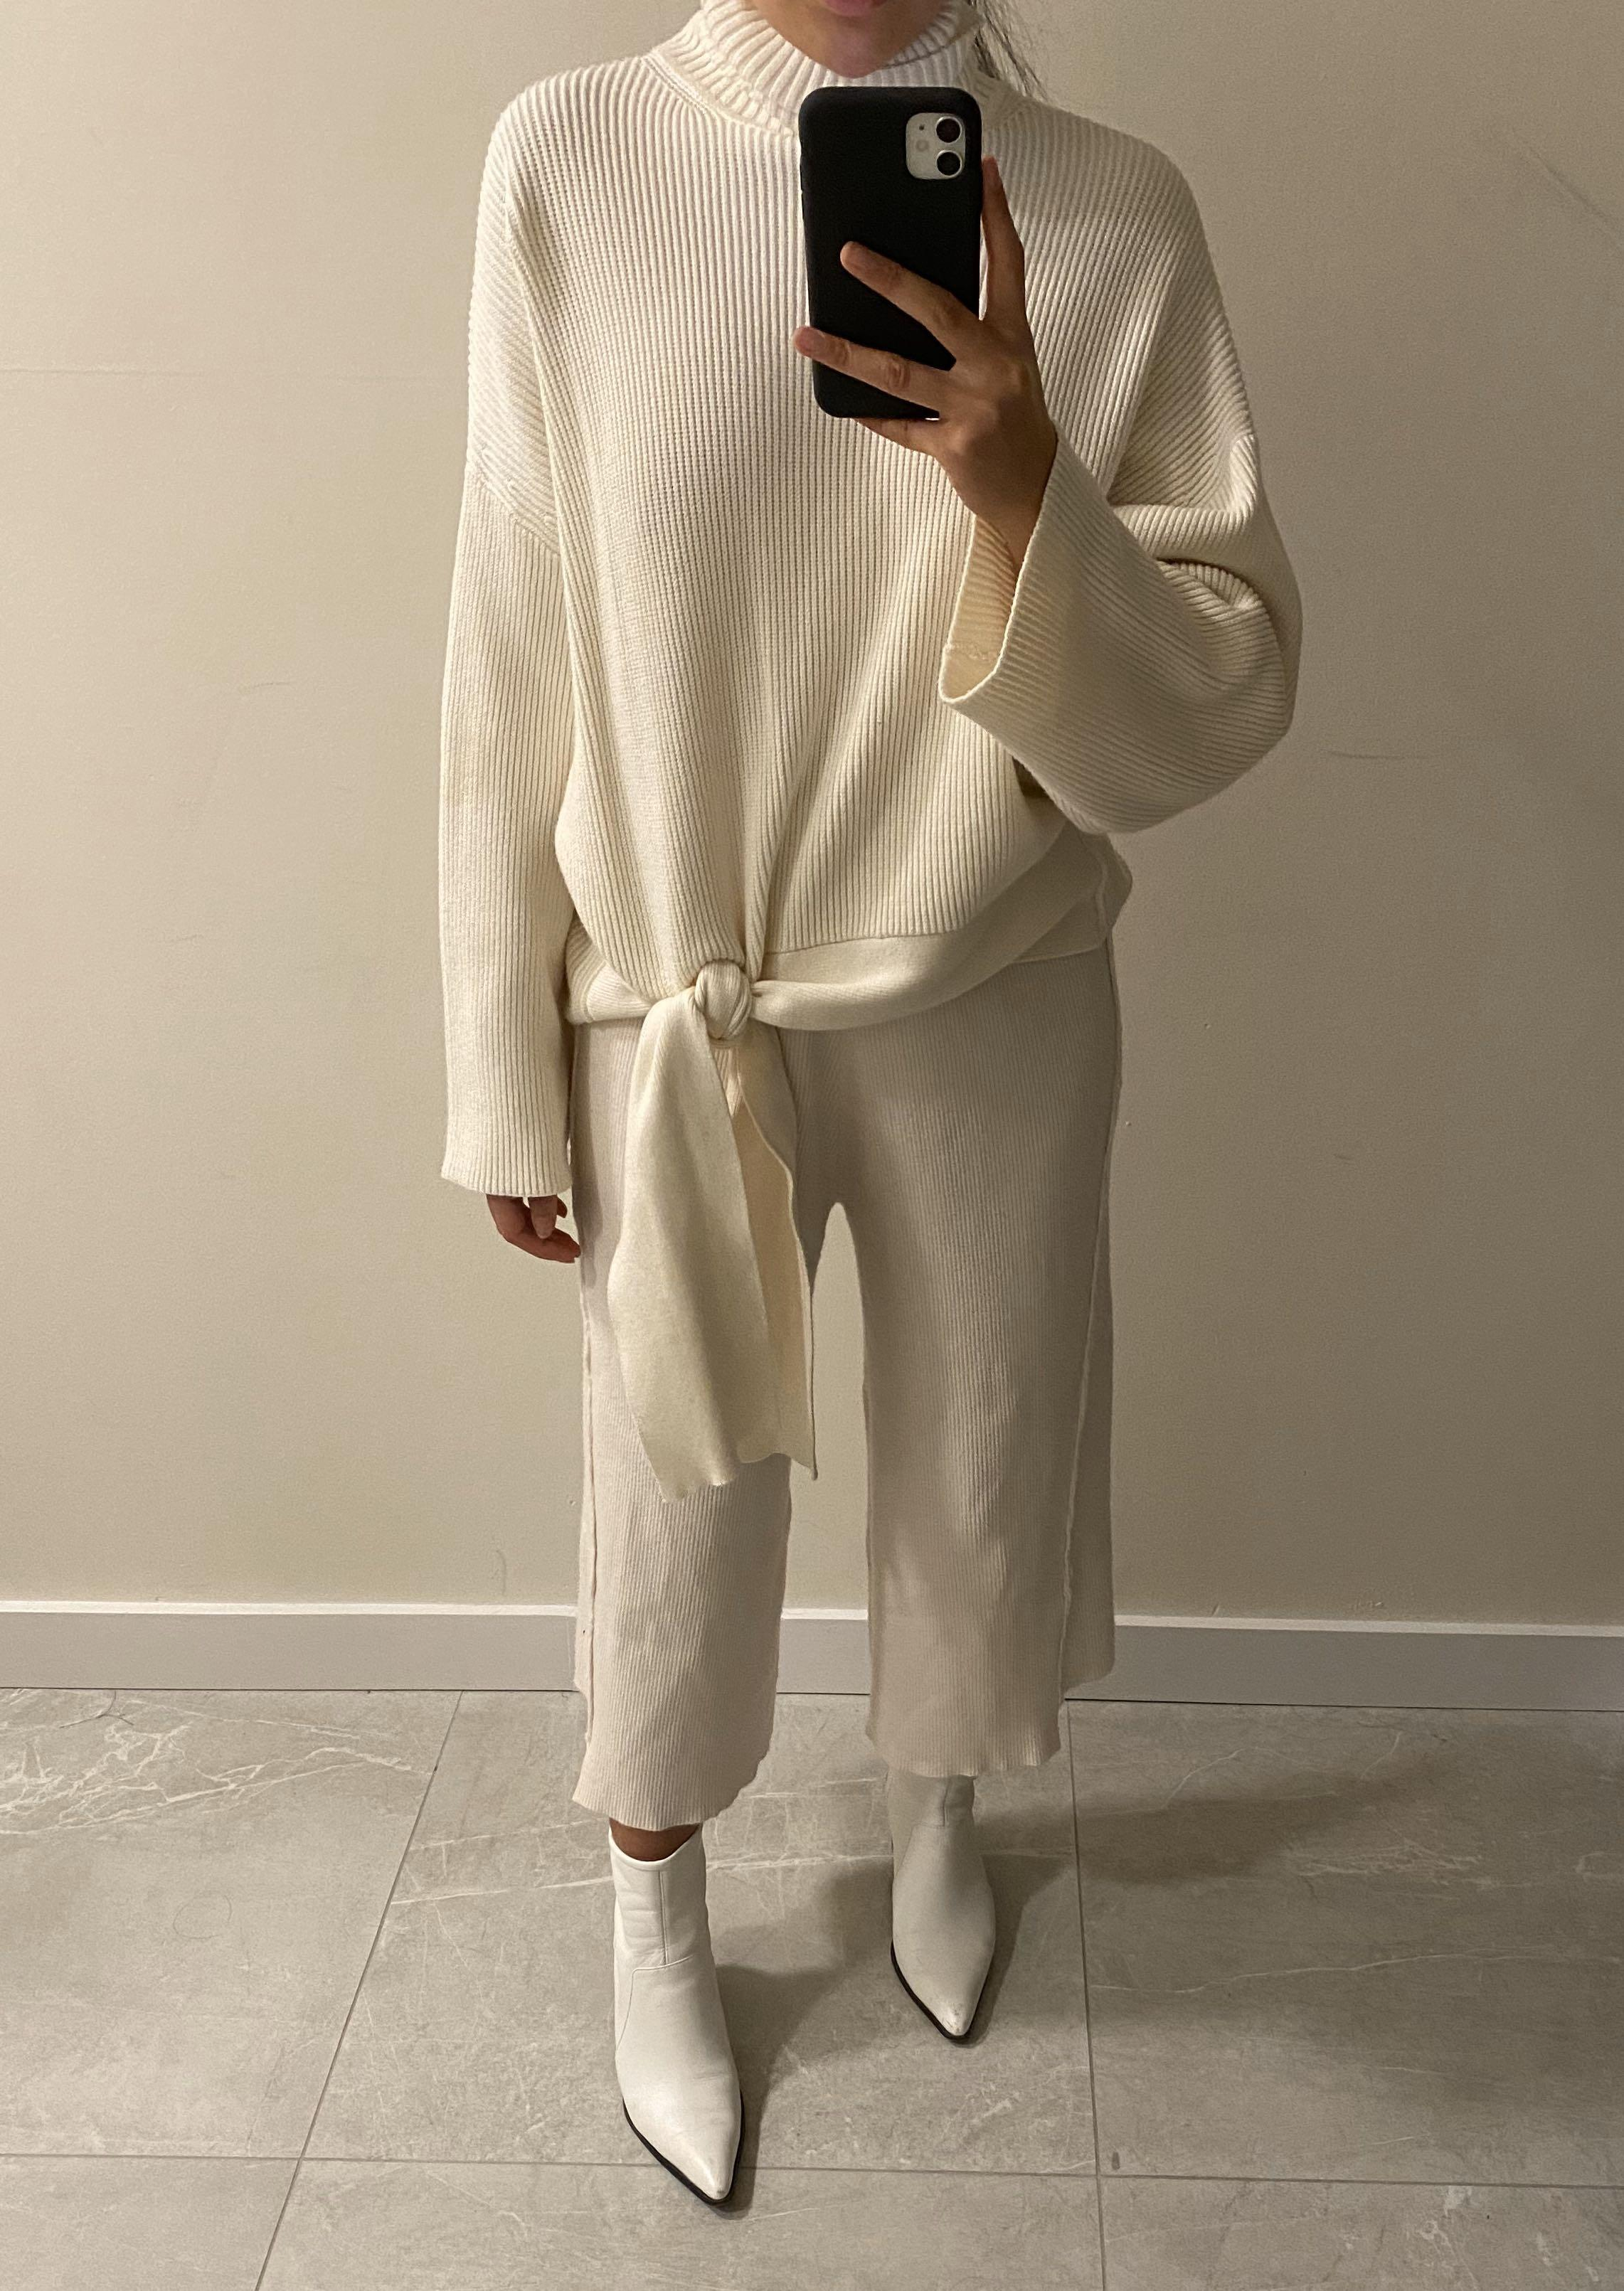 Zara Knot Knit Sweater + FREE matching pants (Size S)